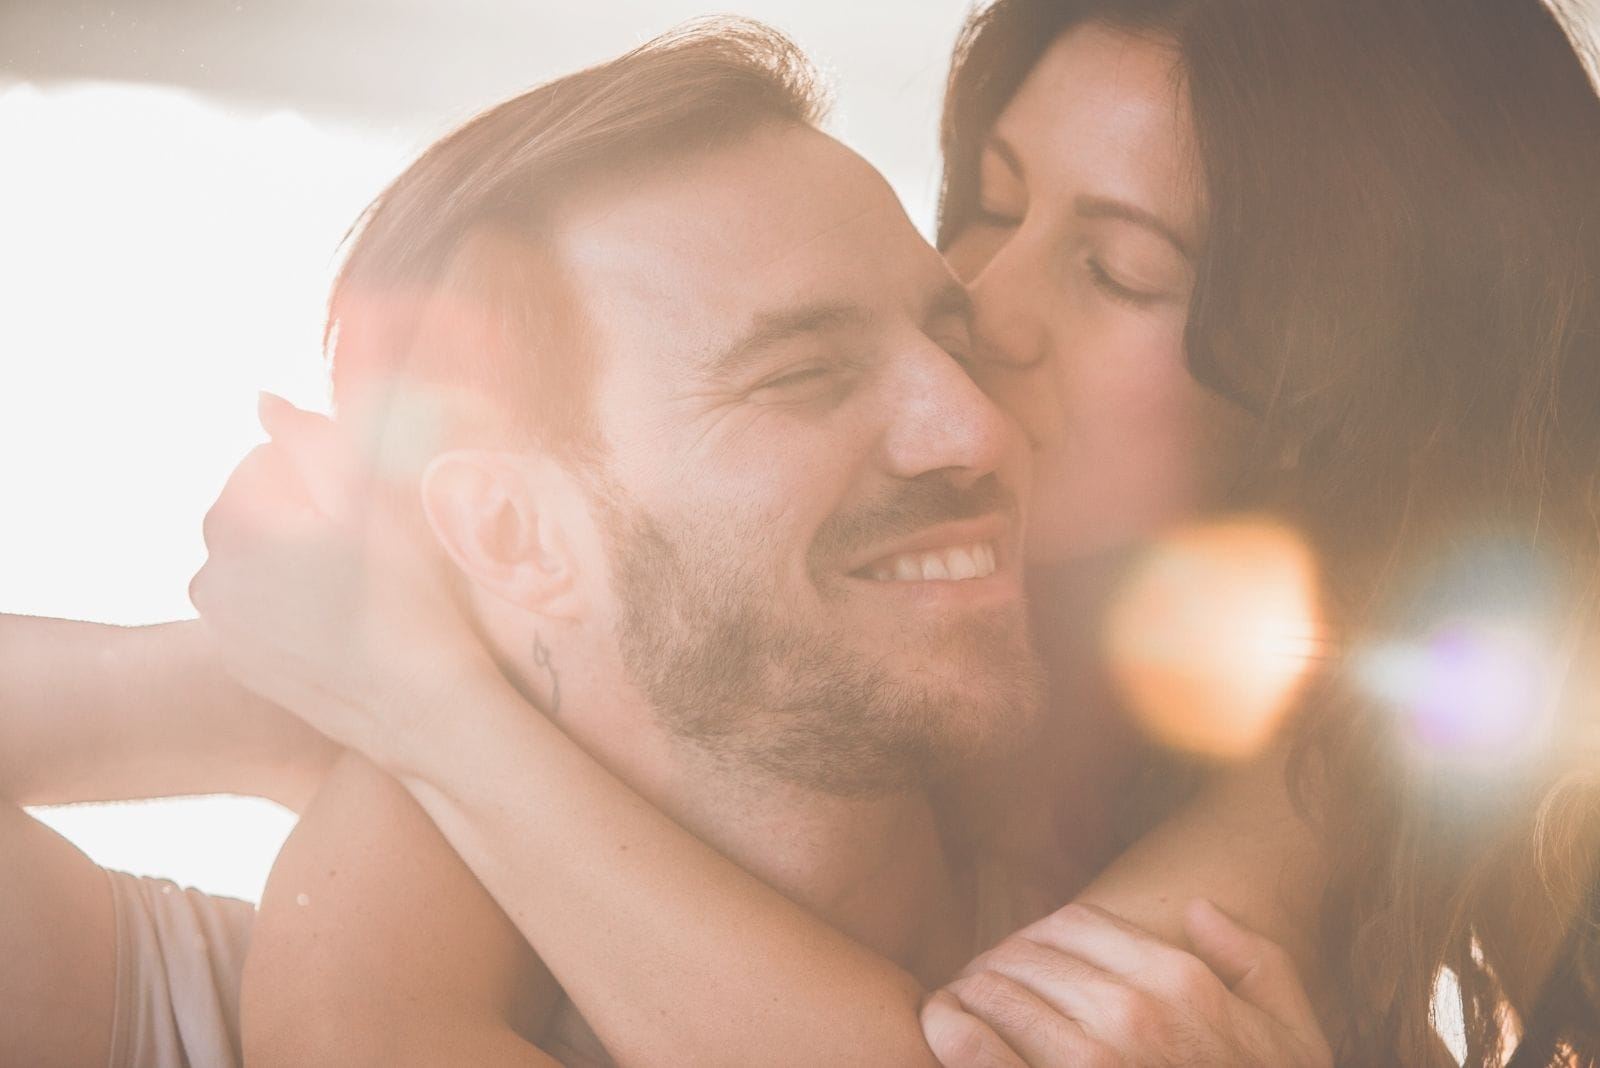 woman kissing and hugging her happy and smiling boyfriend in close up image